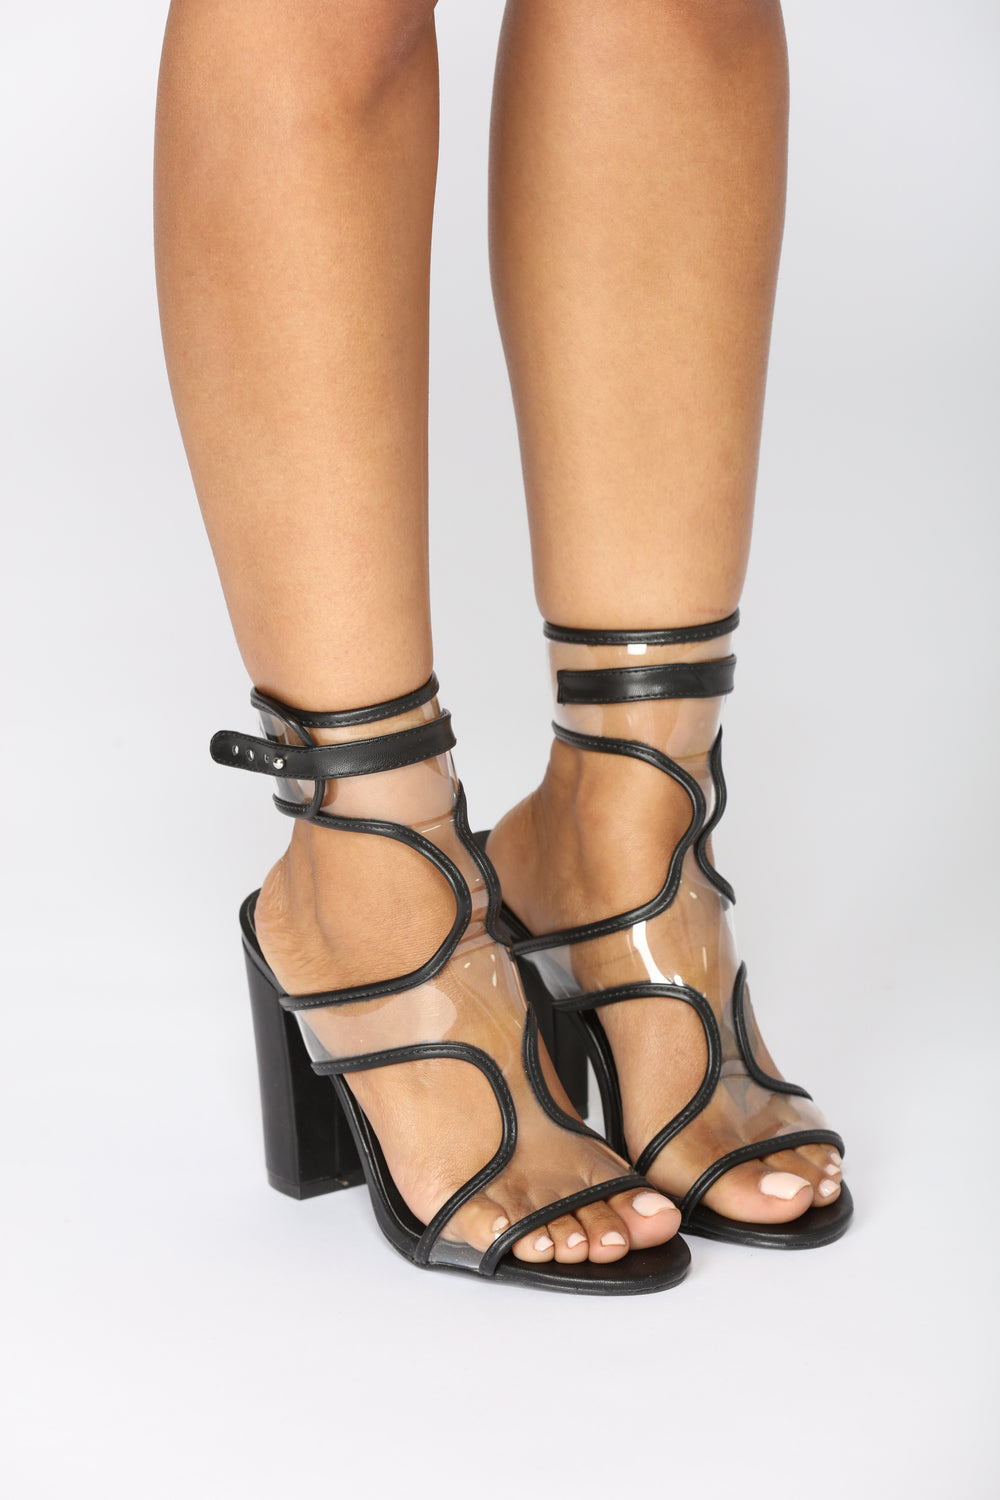 Rip The Runway Heel - Black PU